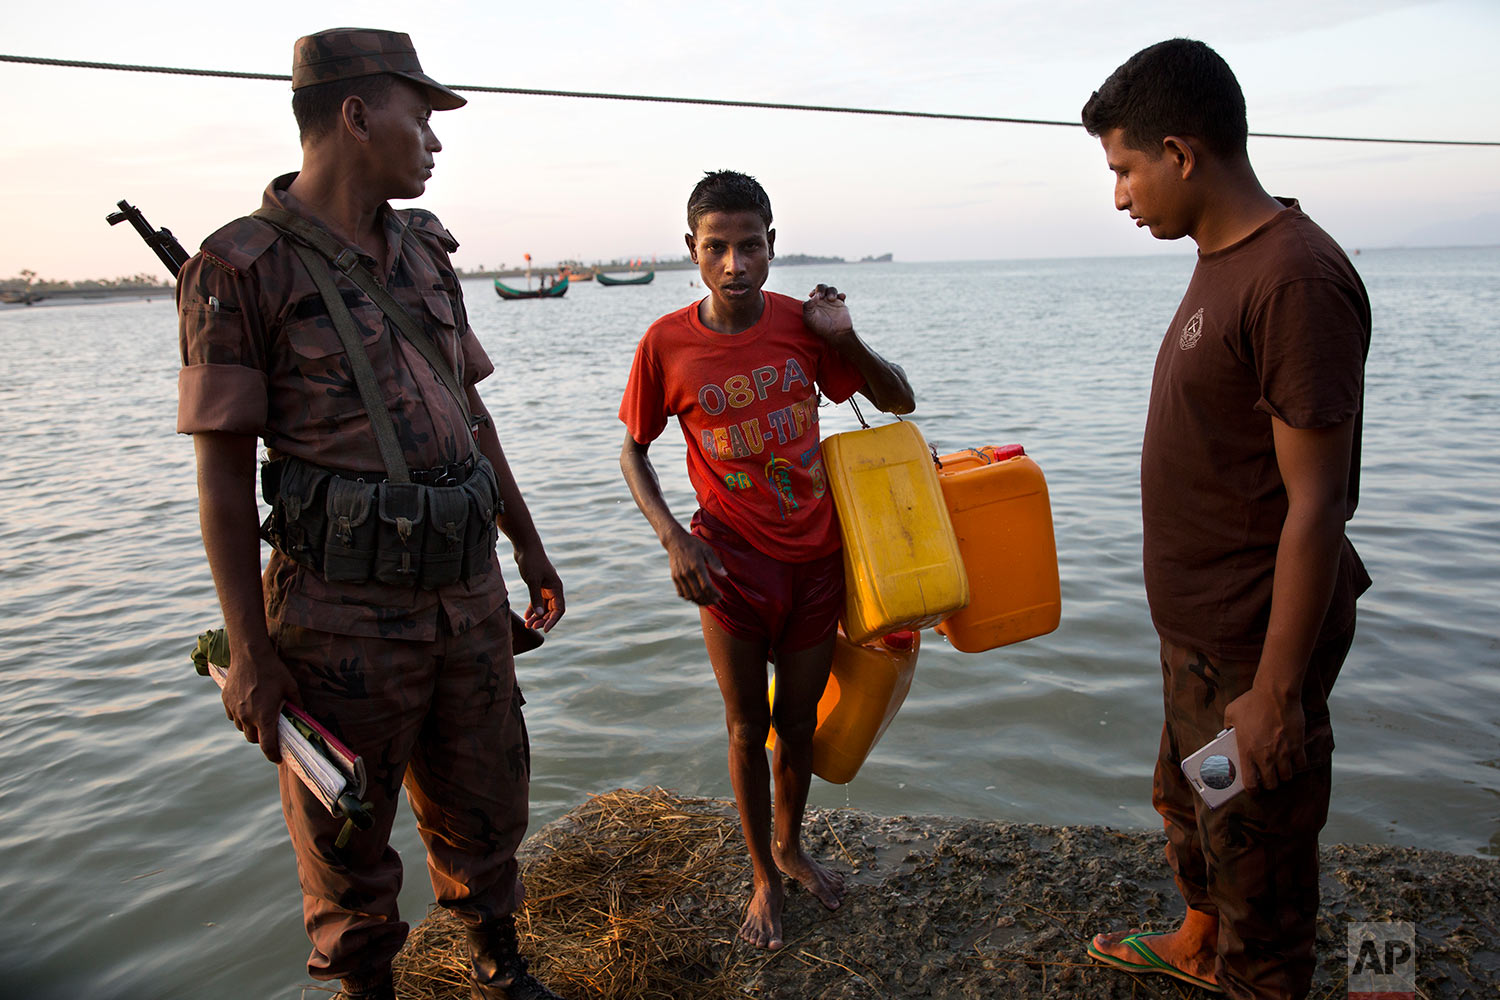 In this Nov. 4, 2017, photo, a Bangladeshi border guard, left, looks at a Rohingya Muslim Belal Hussain, 15, center, as he steps out of the water carrying yellow plastic drums he used as a flotation aid at Shah Porir Dwip, Bangladesh, after swimming the Naf river. (AP Photo/Bernat Armangue)